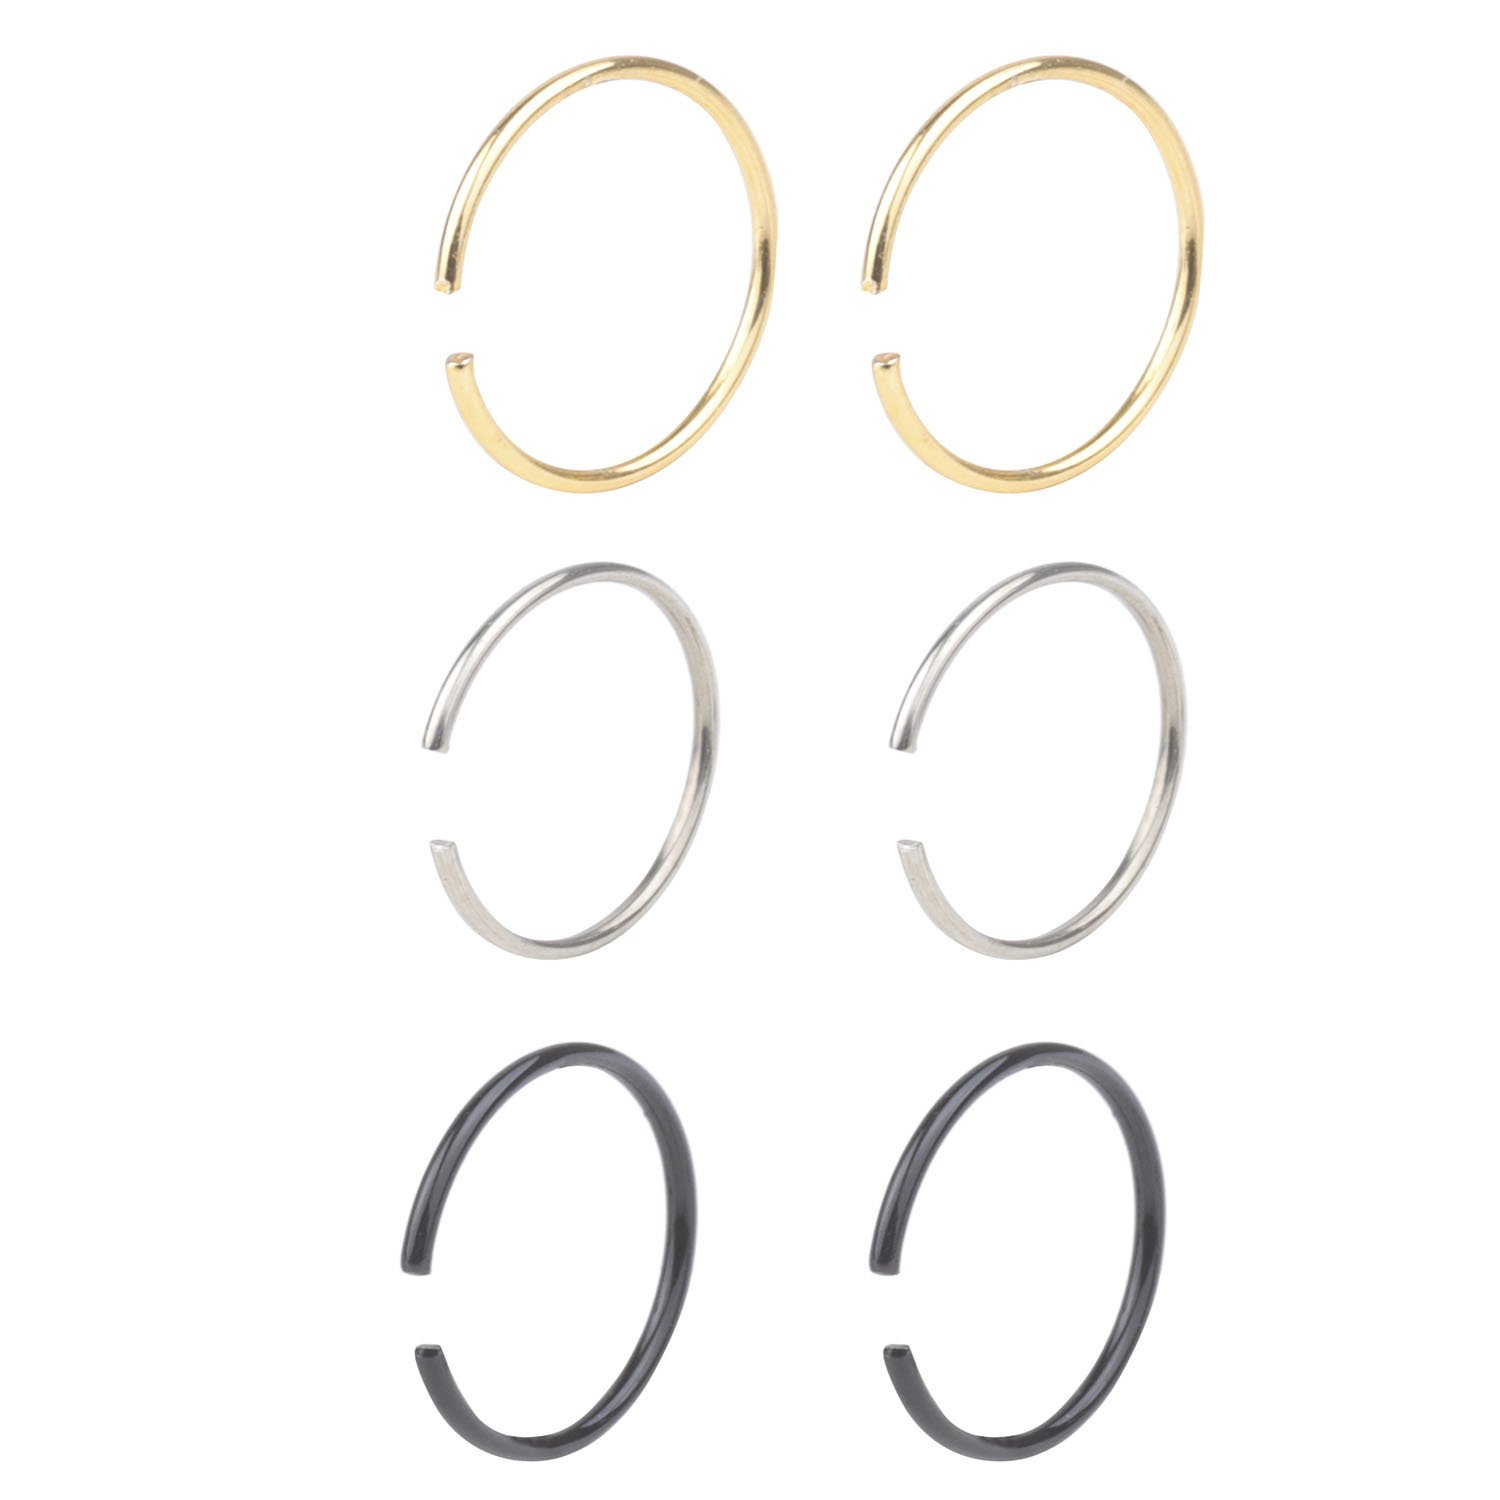 3pair Non Pierced Stainless Steel Clip on Closure Round Ring Fake Nose Lip Helix Cartilage Tragus Ear Hoop 20G